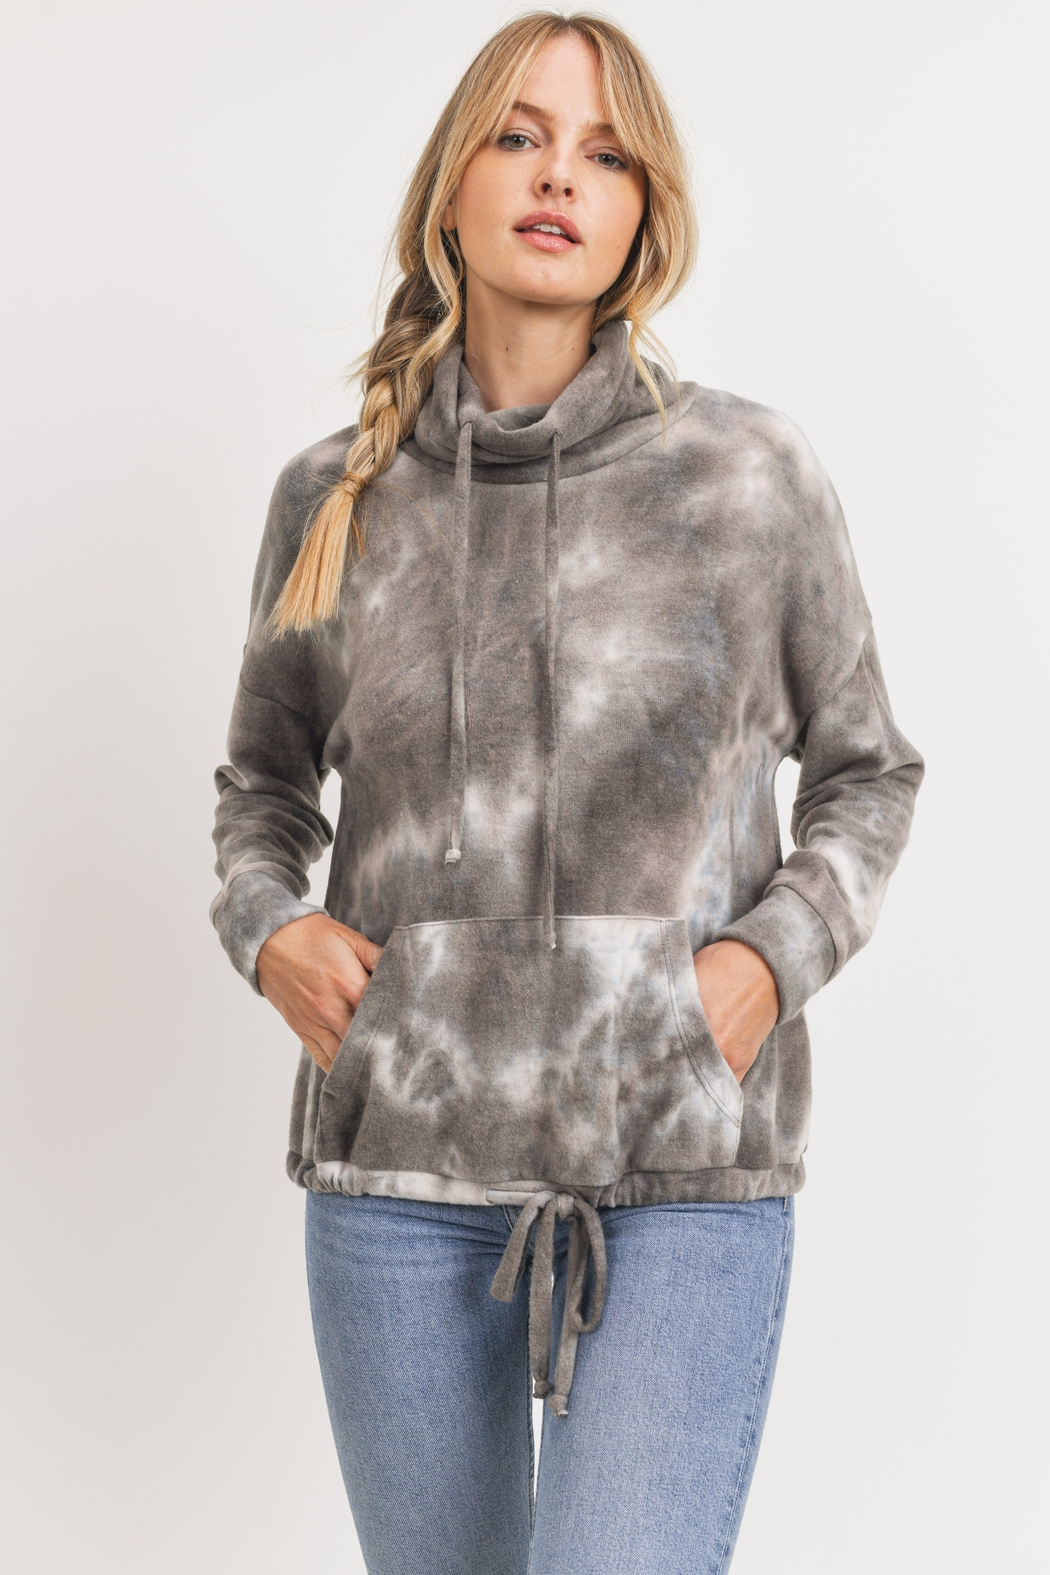 Cherish Cowl Neck Brushed Knit Tie Dye Pullover - Main Image